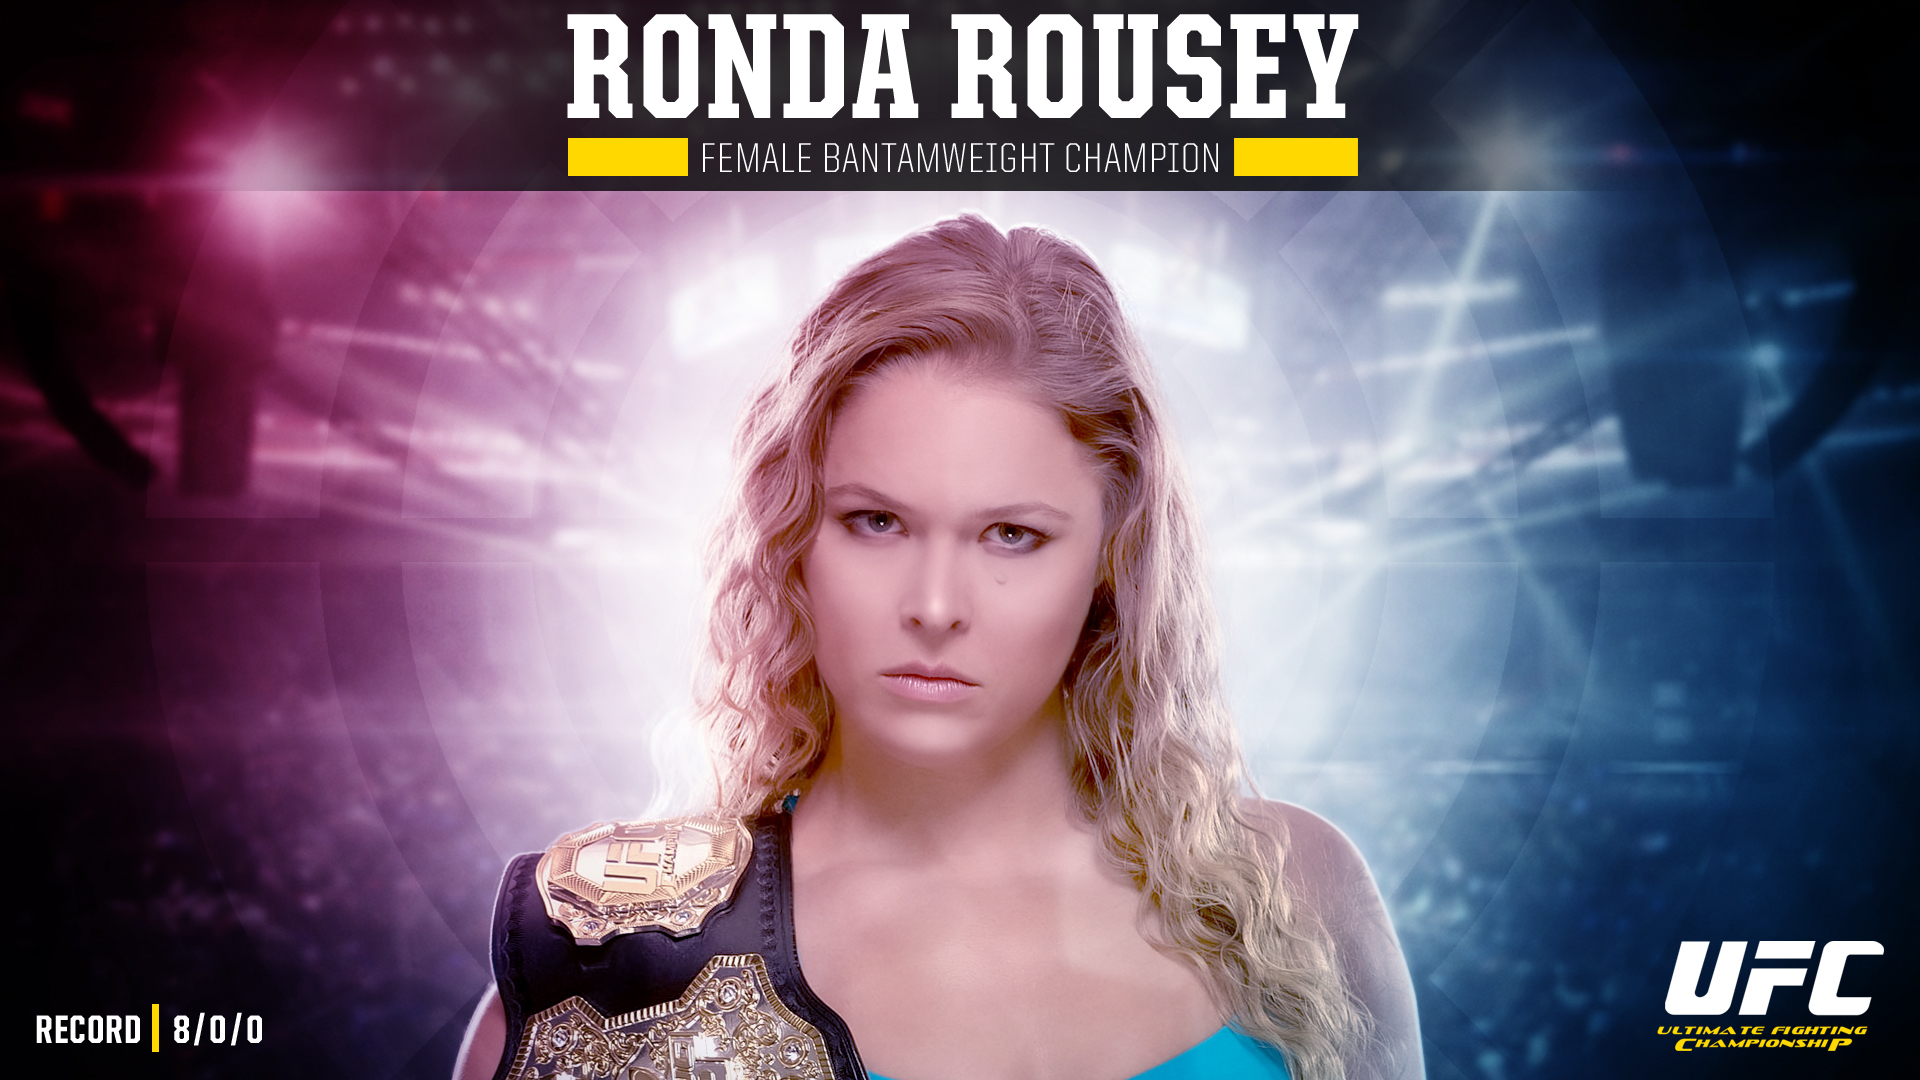 Ronda rousey still undisputed by exaart on deviantart